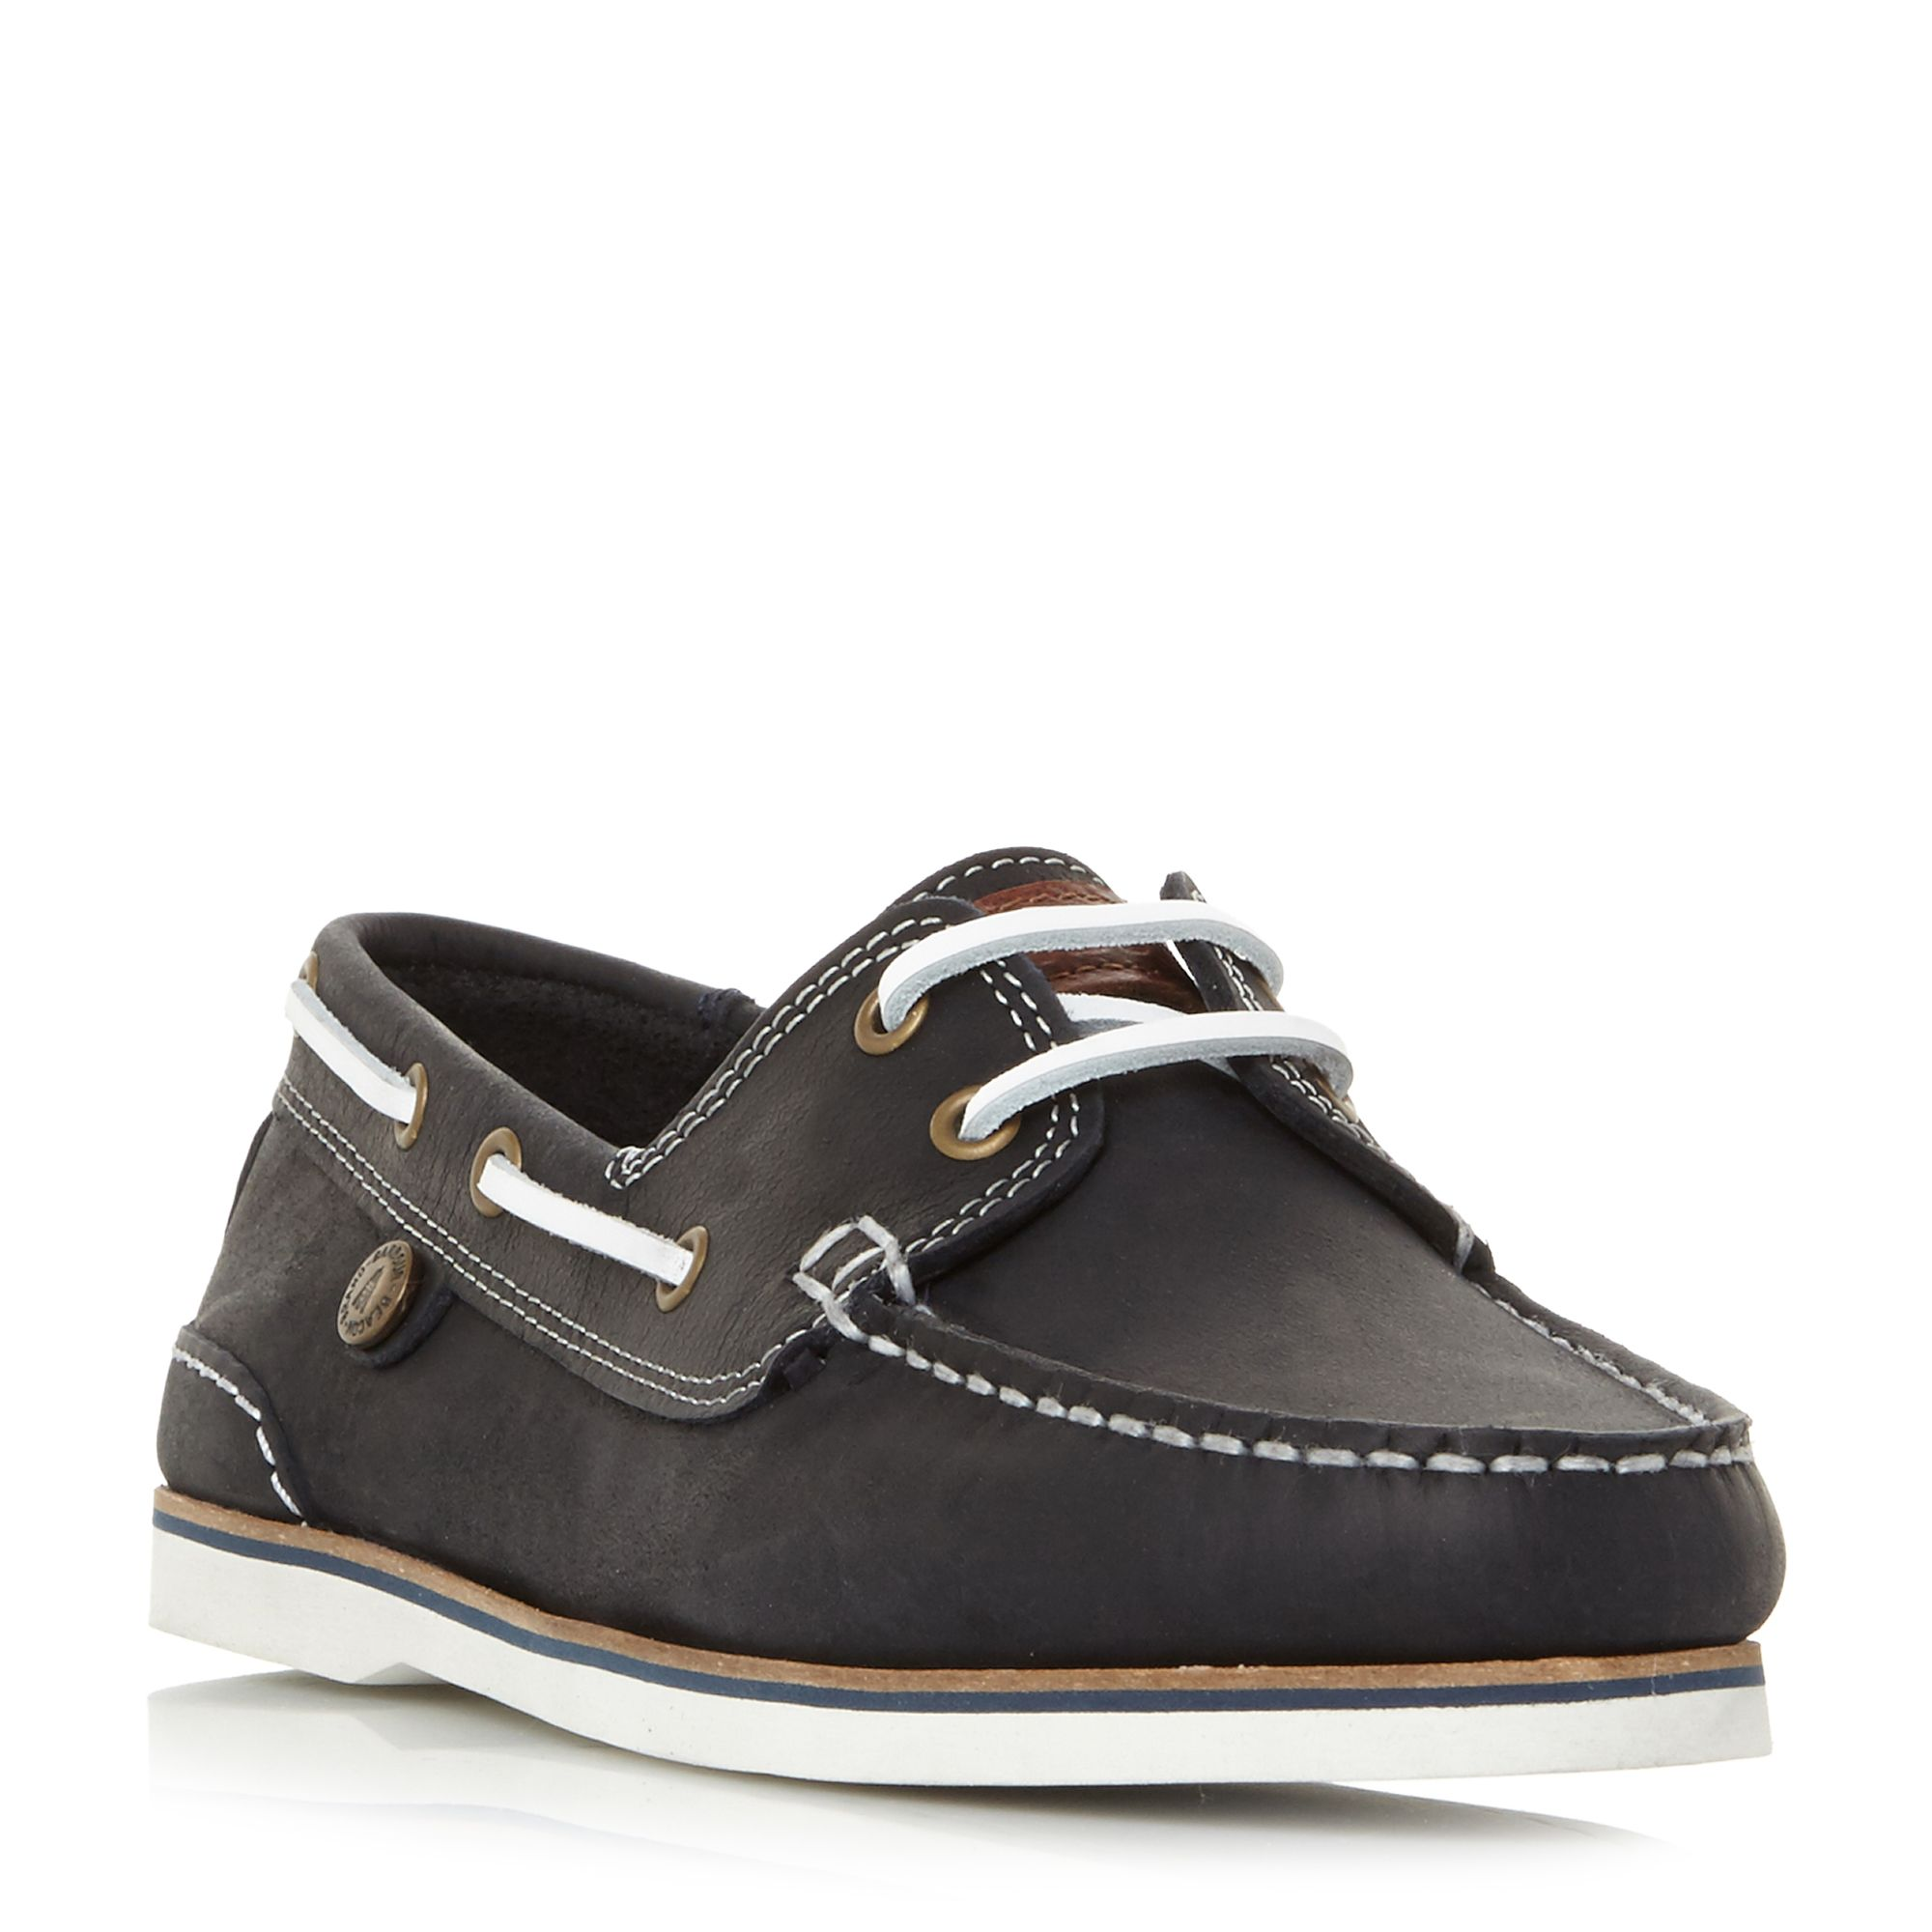 Barbour Bowline Boat Shoes, Blue